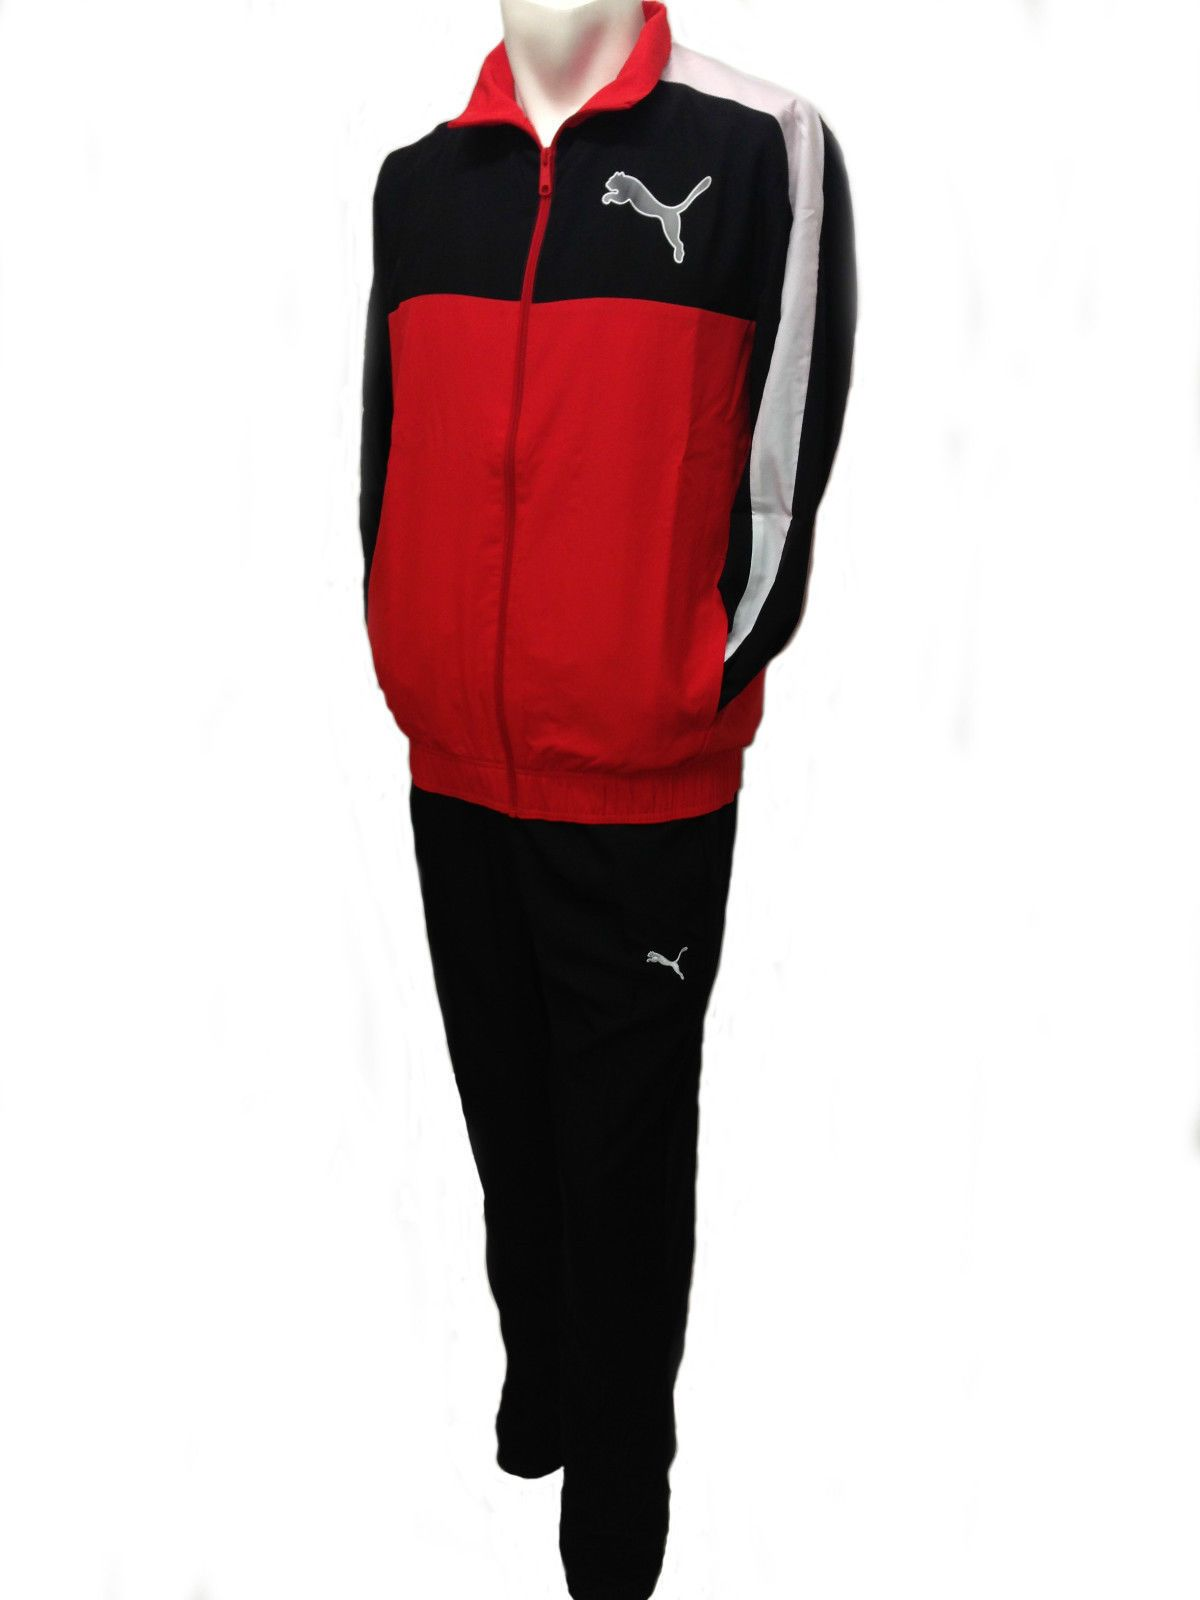 Details about Puma Mens Full Zip TrackSuit Woven Track Top